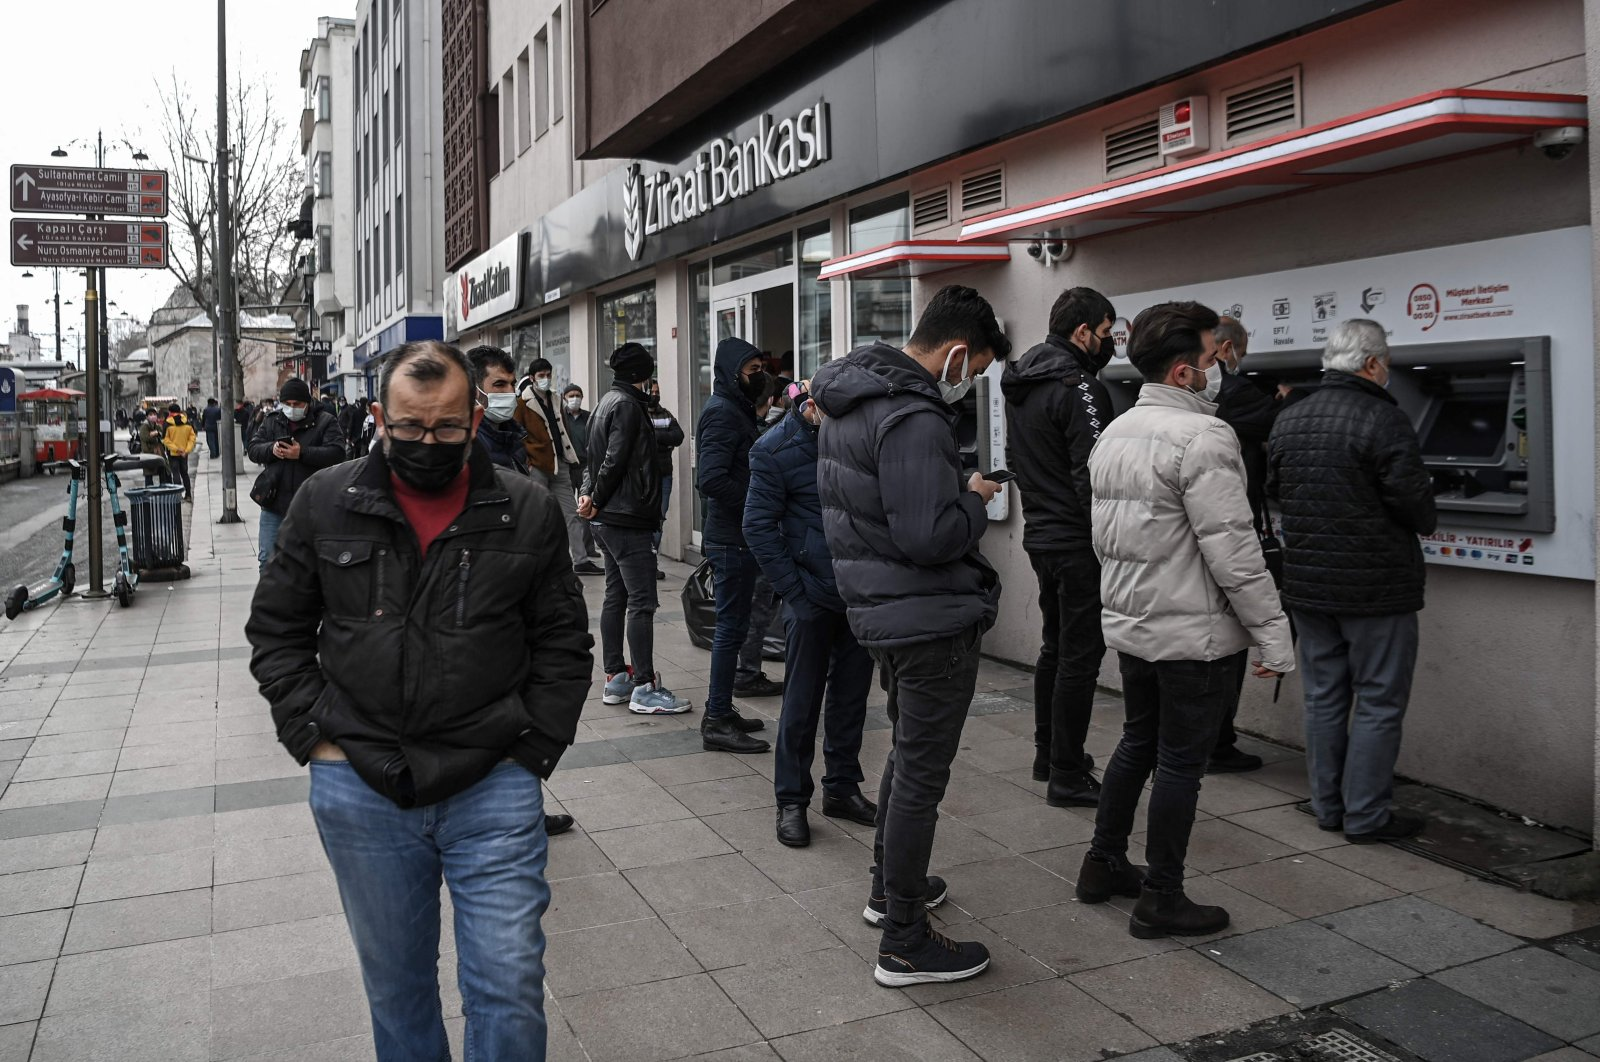 Customers wait in line to use the ATMs of a Turkish bank near the Grand Bazaar in Istanbul, Turkey, March 22, 2021. (AFP Photo)